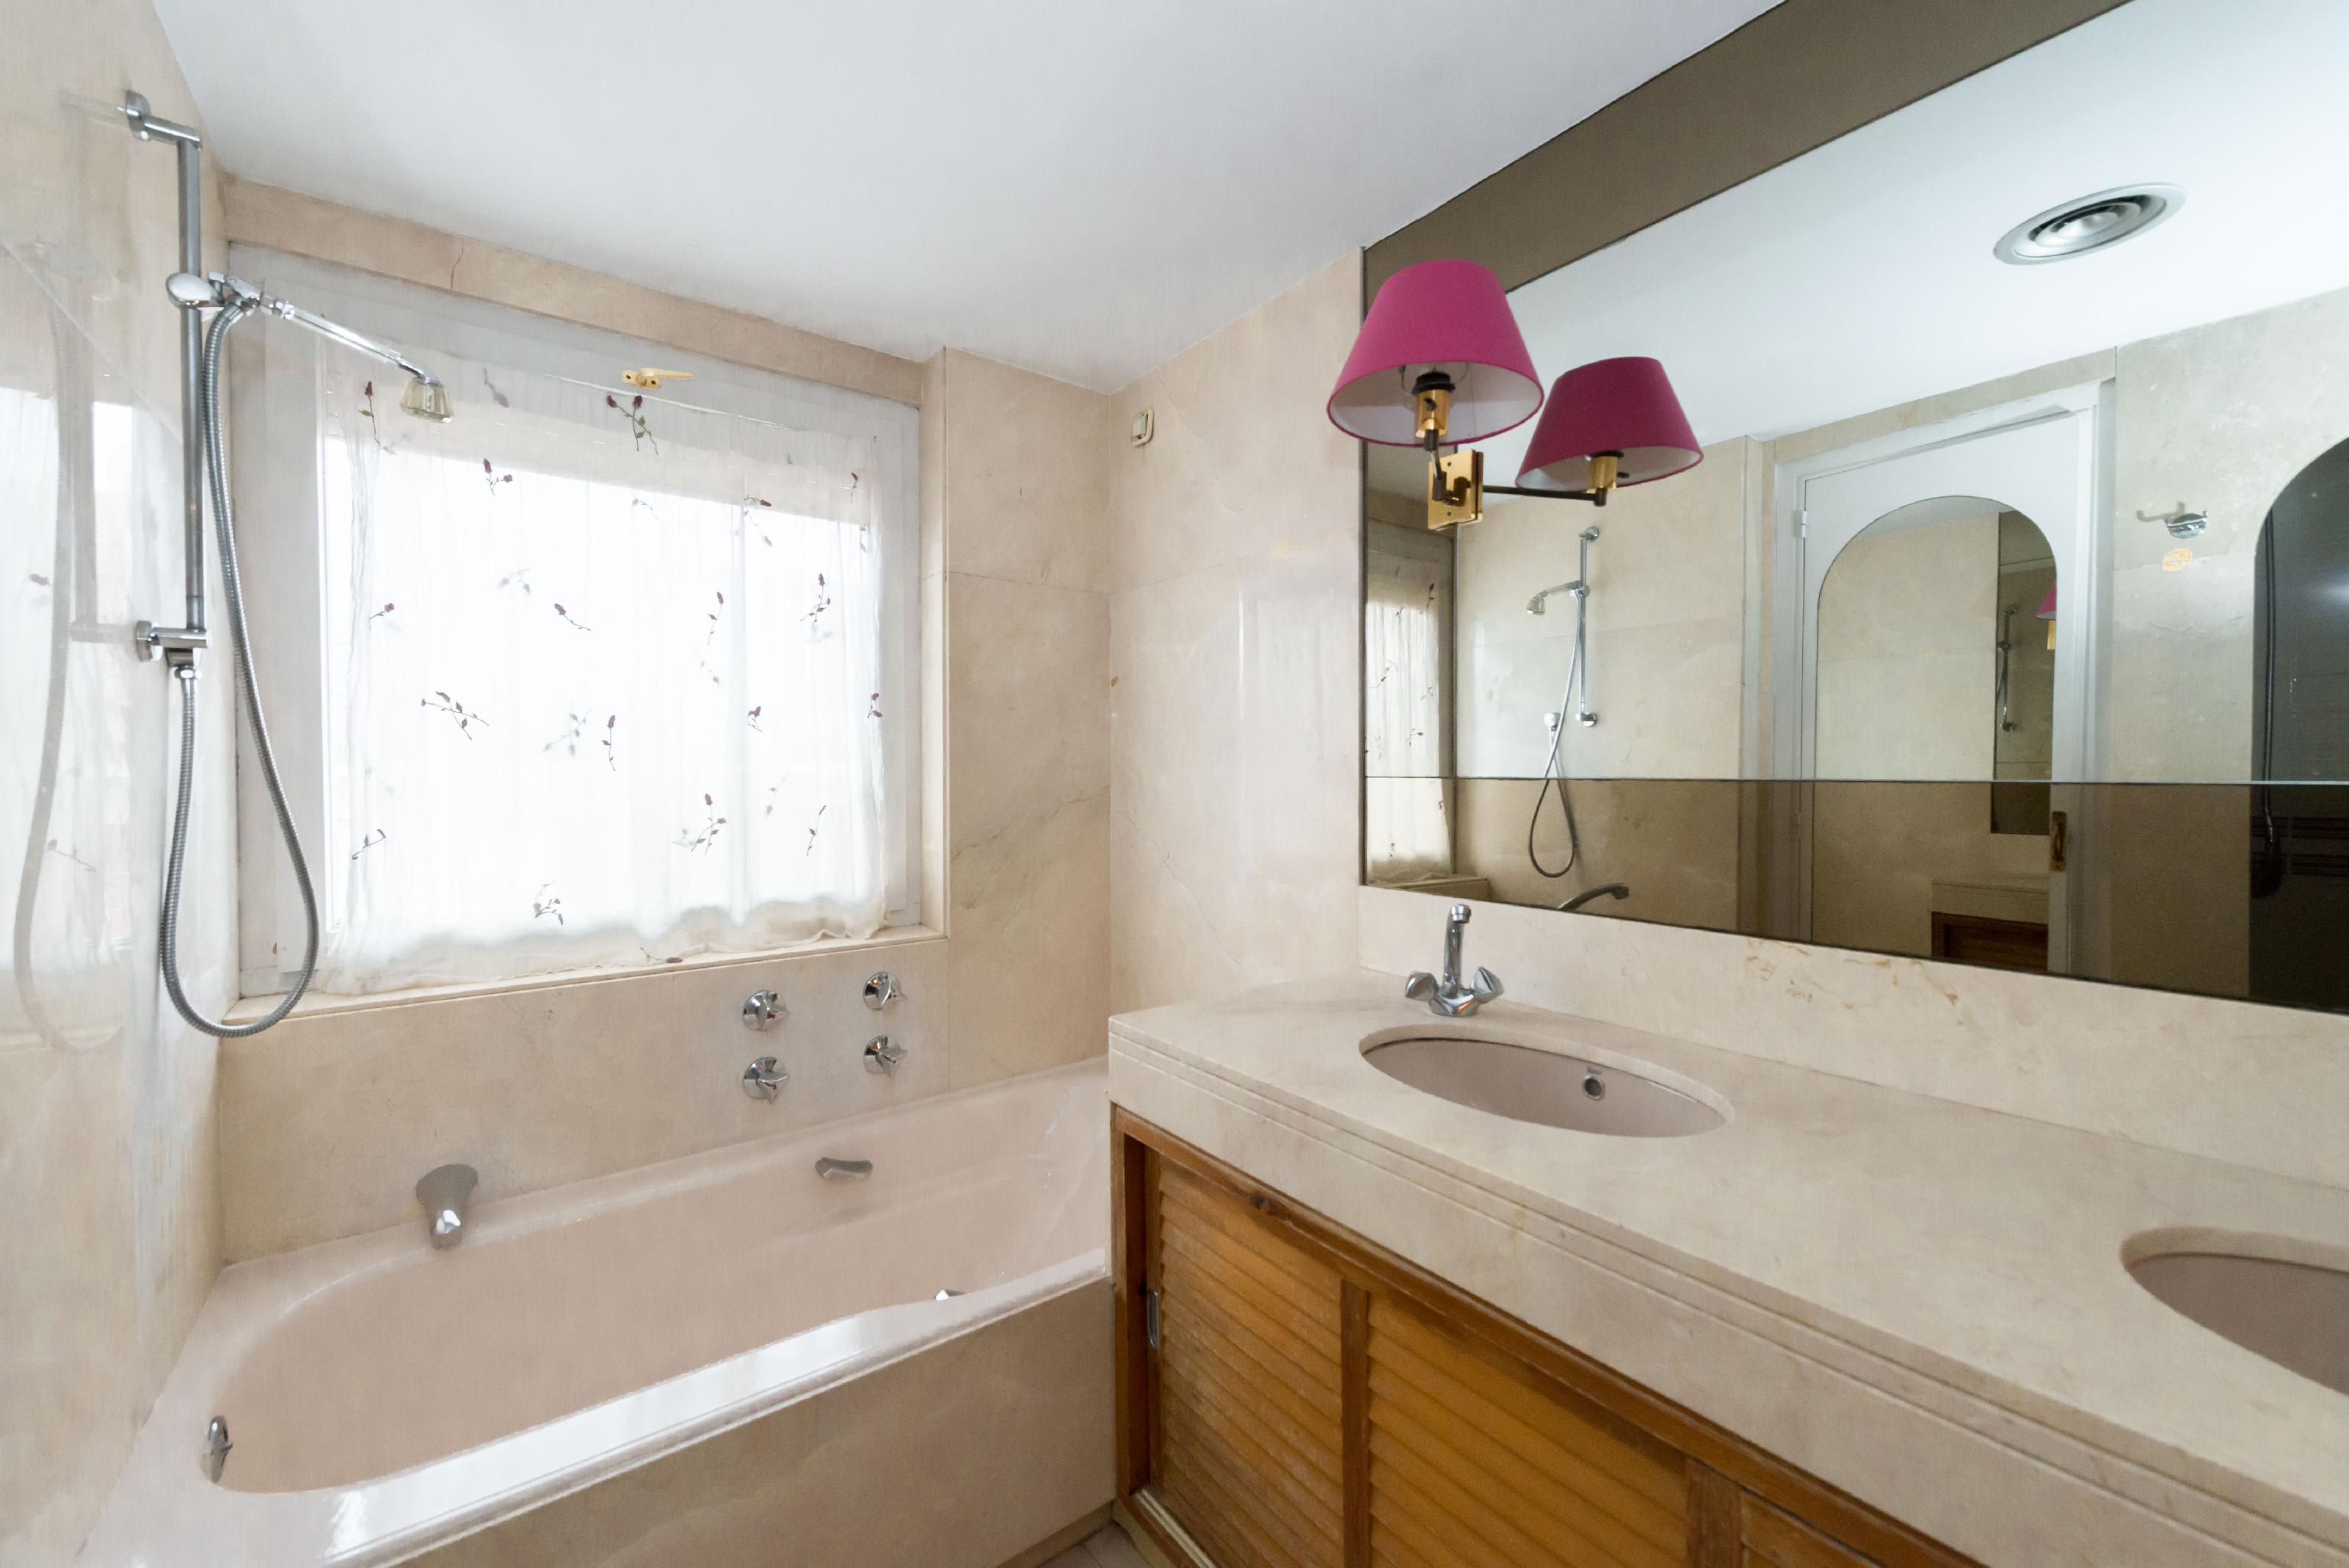 245495 Penthouse for sale in Les Corts, Pedralbes 18